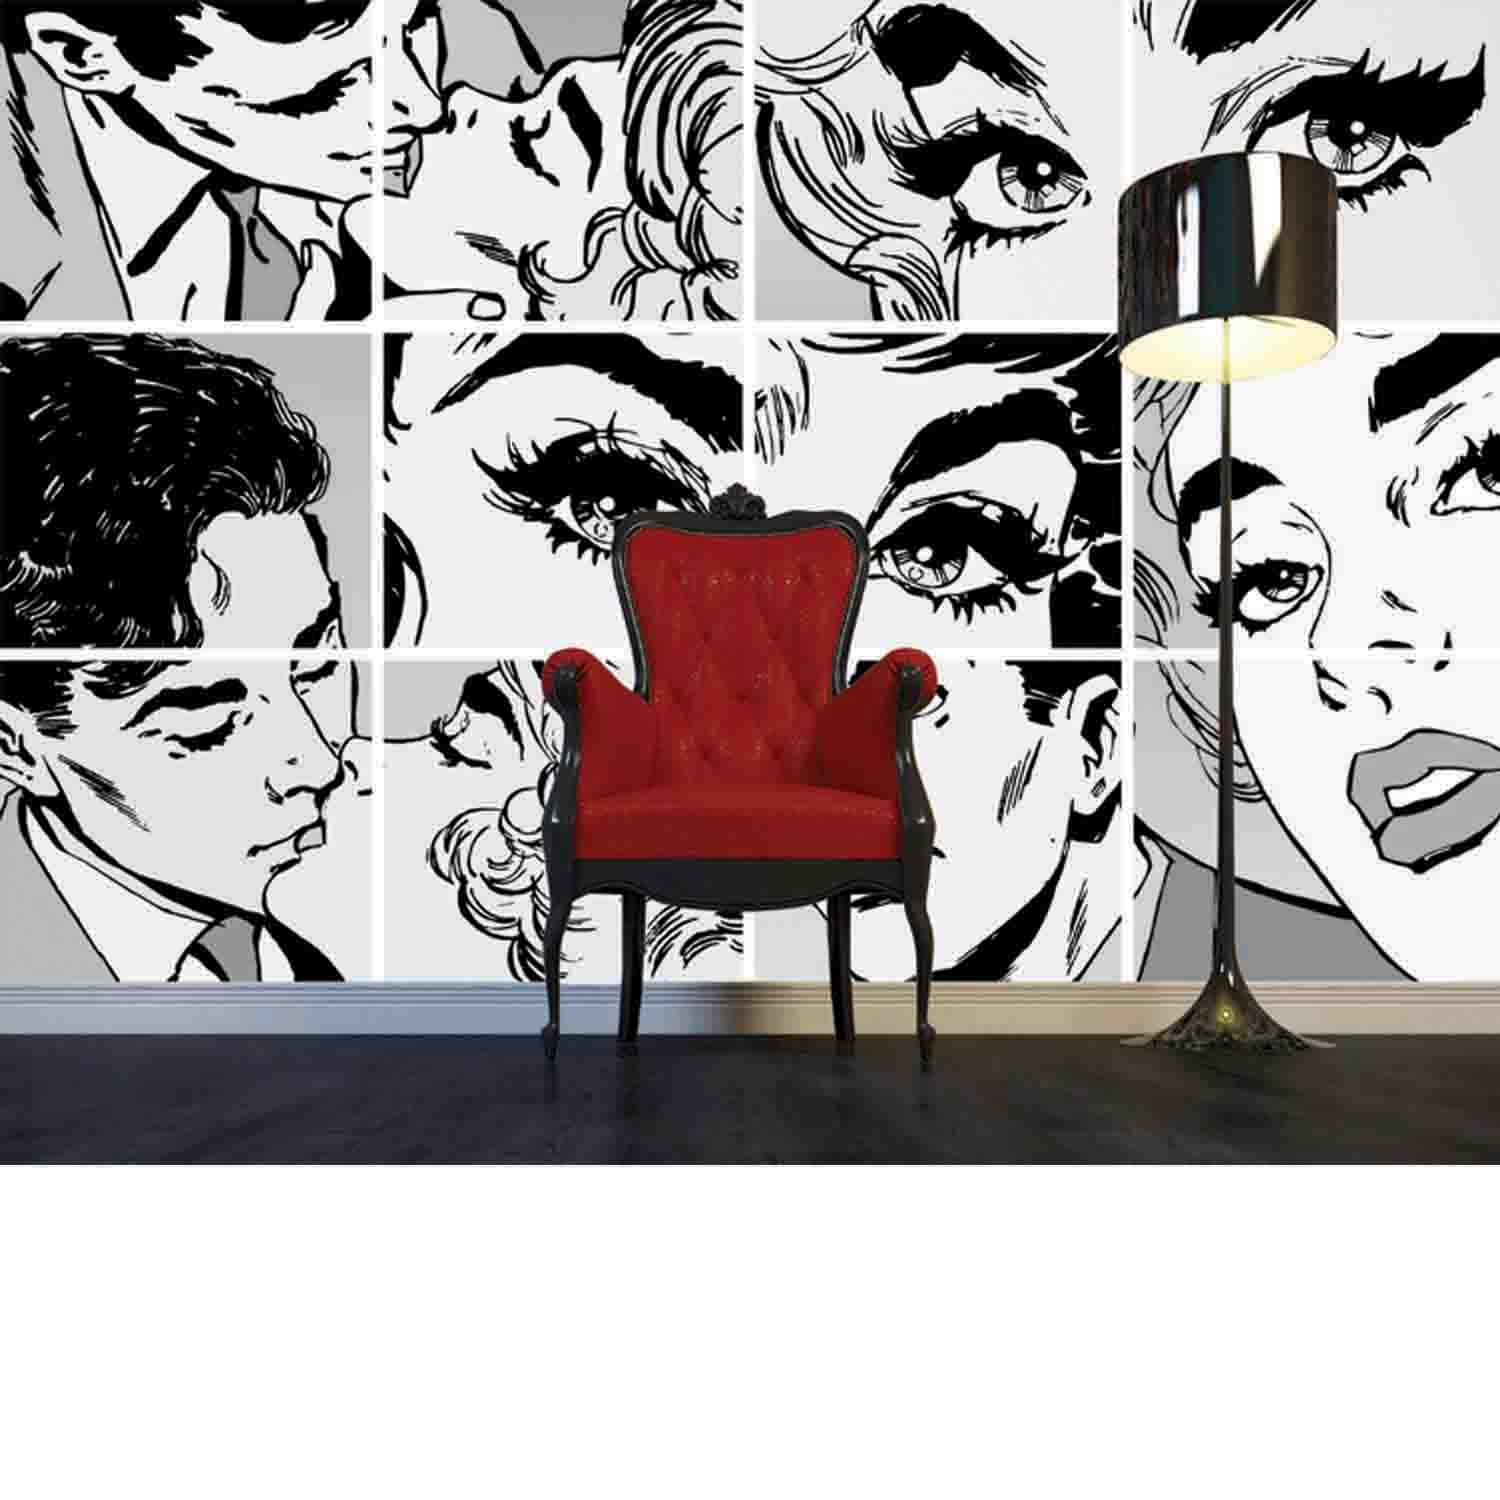 Modern Pop Art Style Apartment: So, If You Are Redecorating Your Apartment And Want To Add